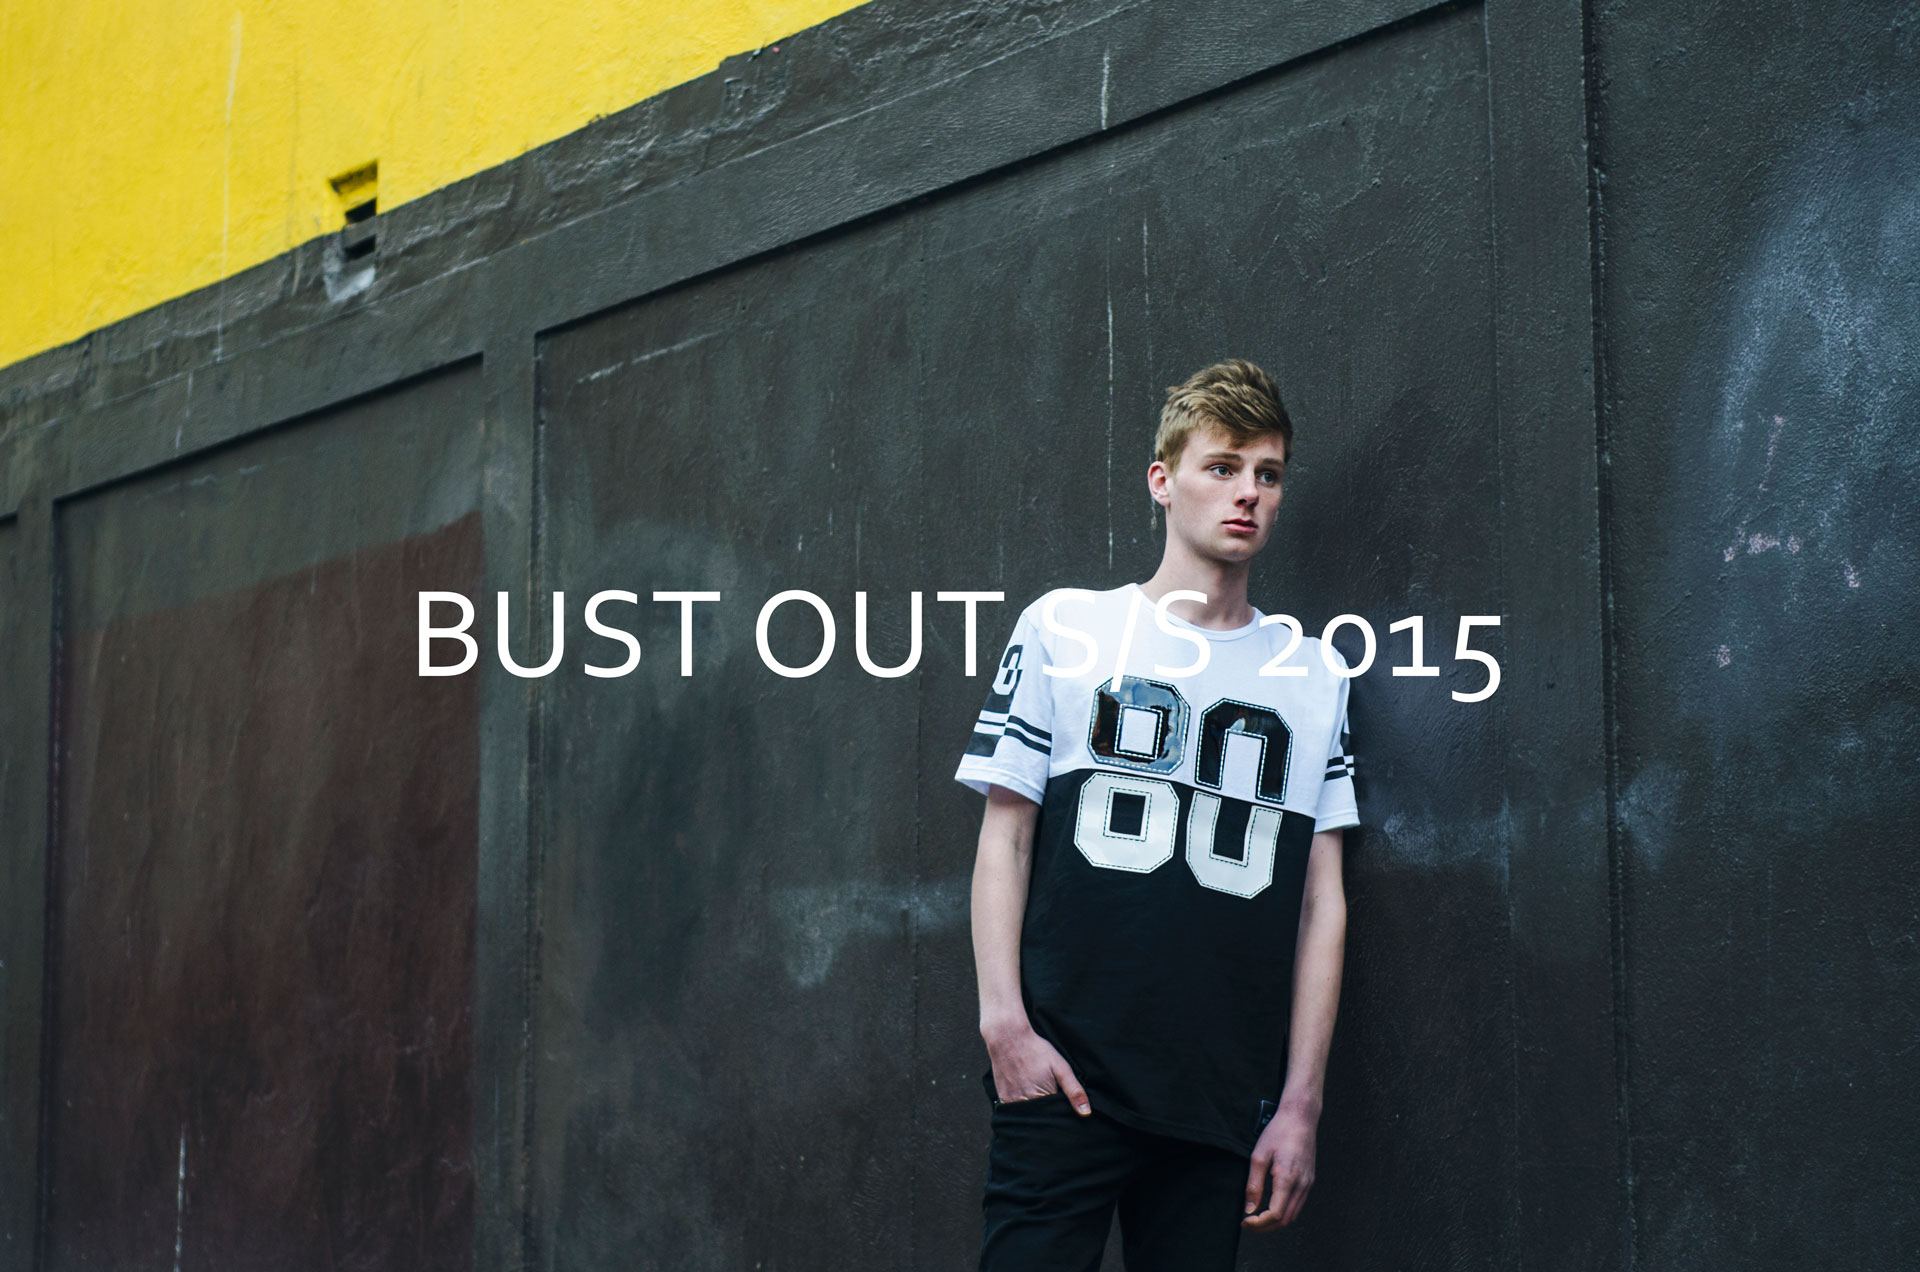 bust-out1